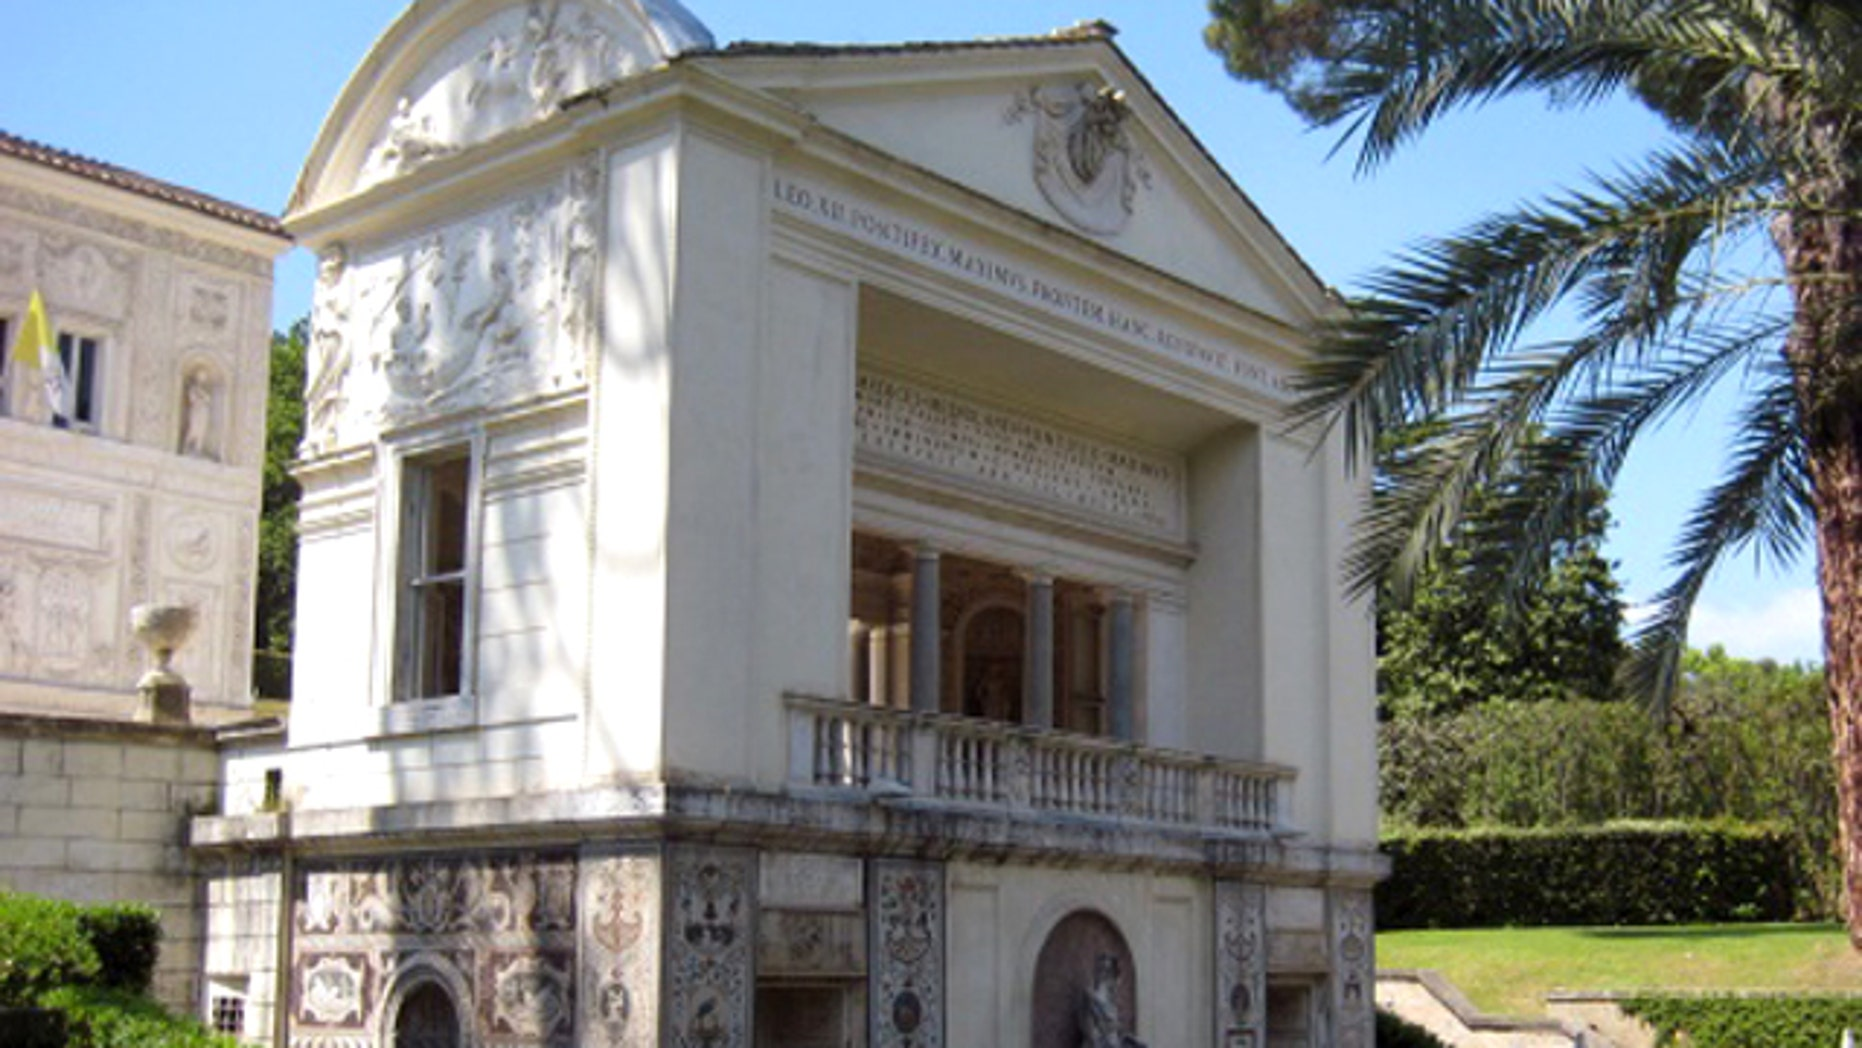 Located within the Vatican garden, Casina Pio IV is a 16th century villa that houses the Pontifical Academy of Sciences.